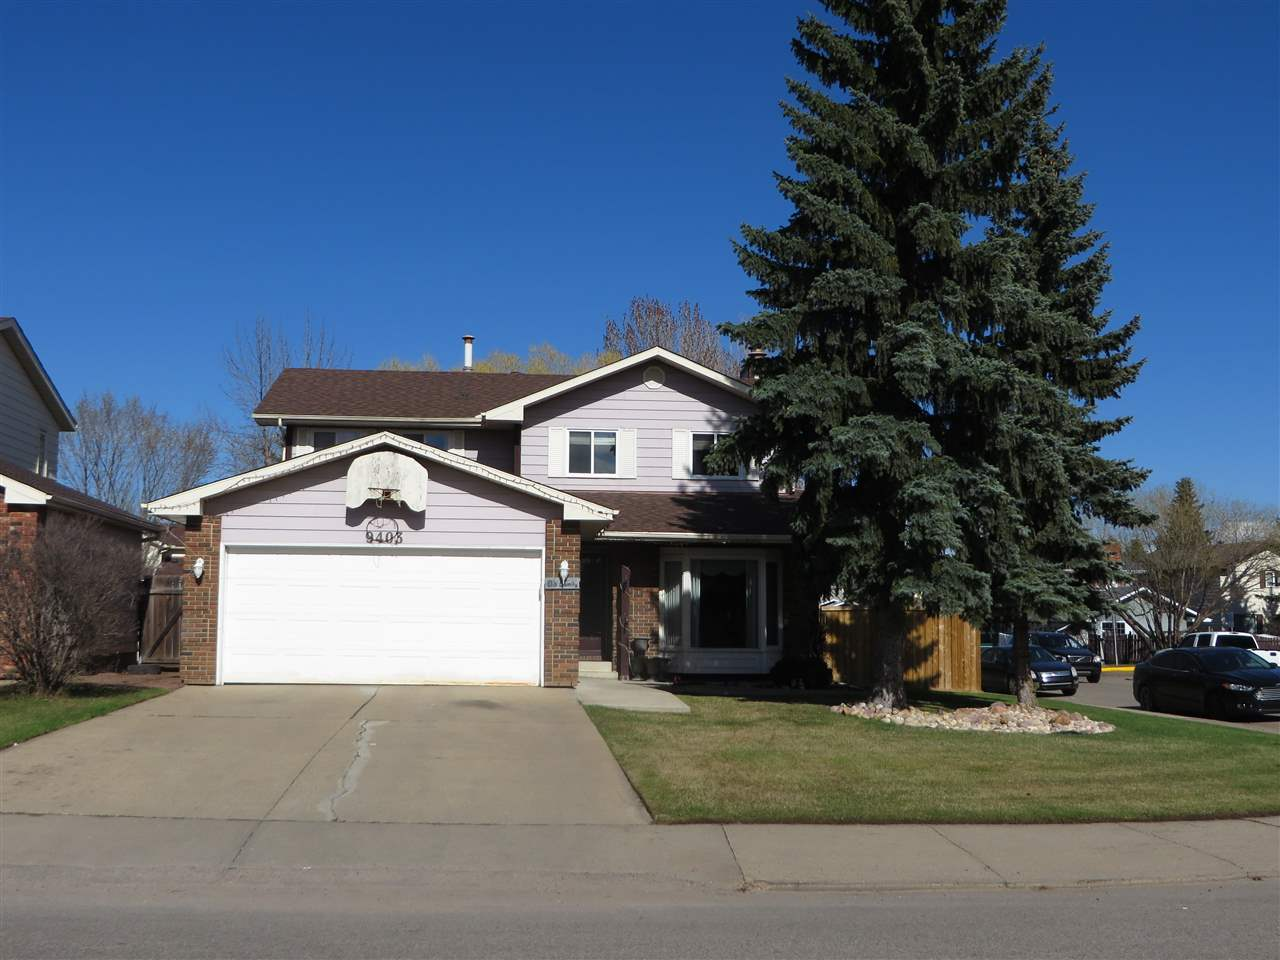 Main Photo: 9403 175 Street in Edmonton: Zone 20 House for sale : MLS(r) # E4063598